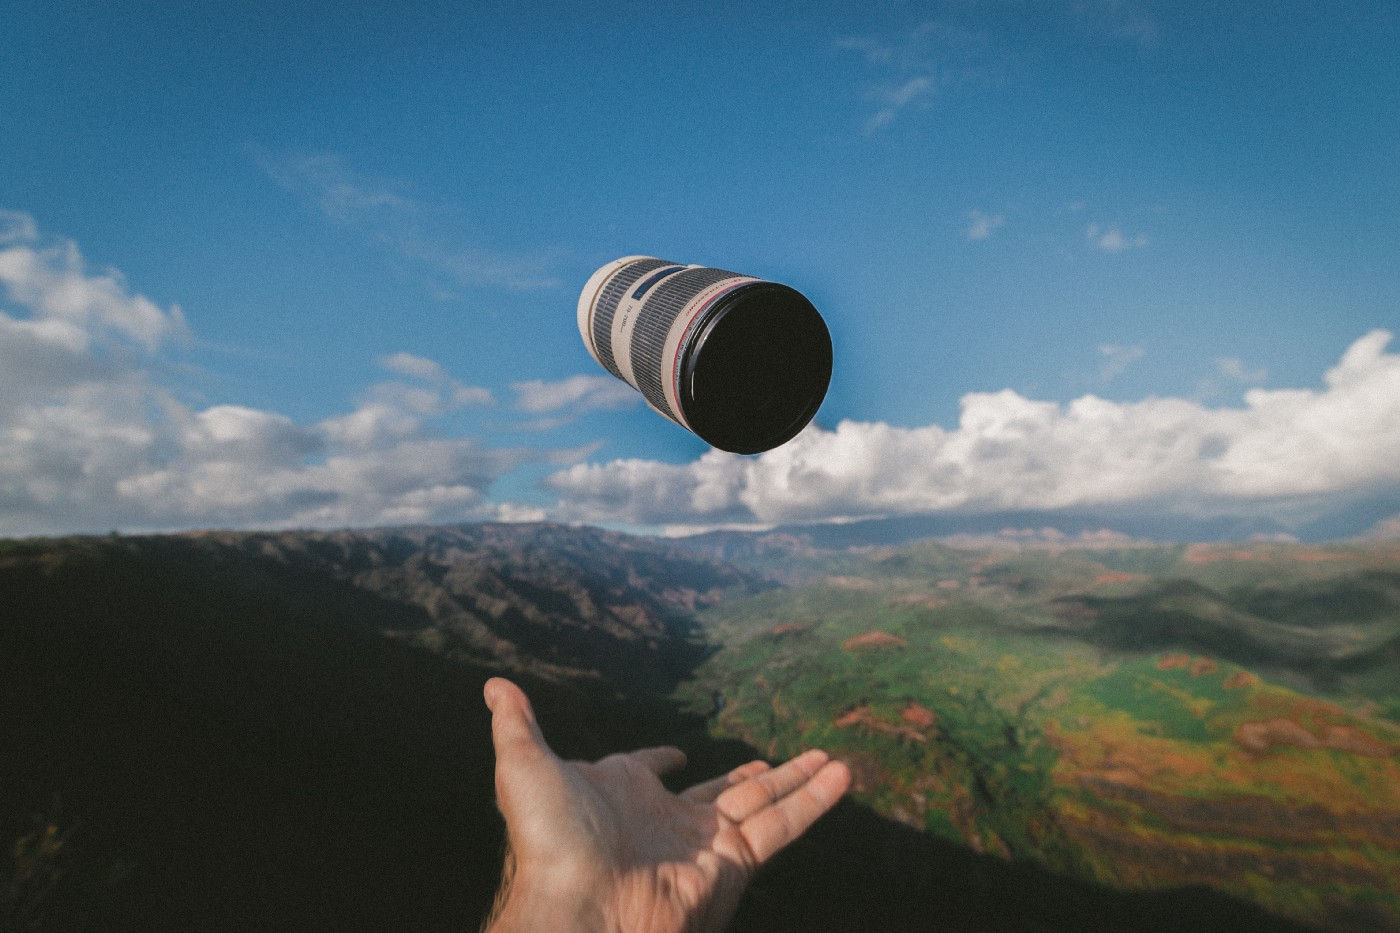 A hand throwing a cup into the air with a scenic background of mountains and grasslands.